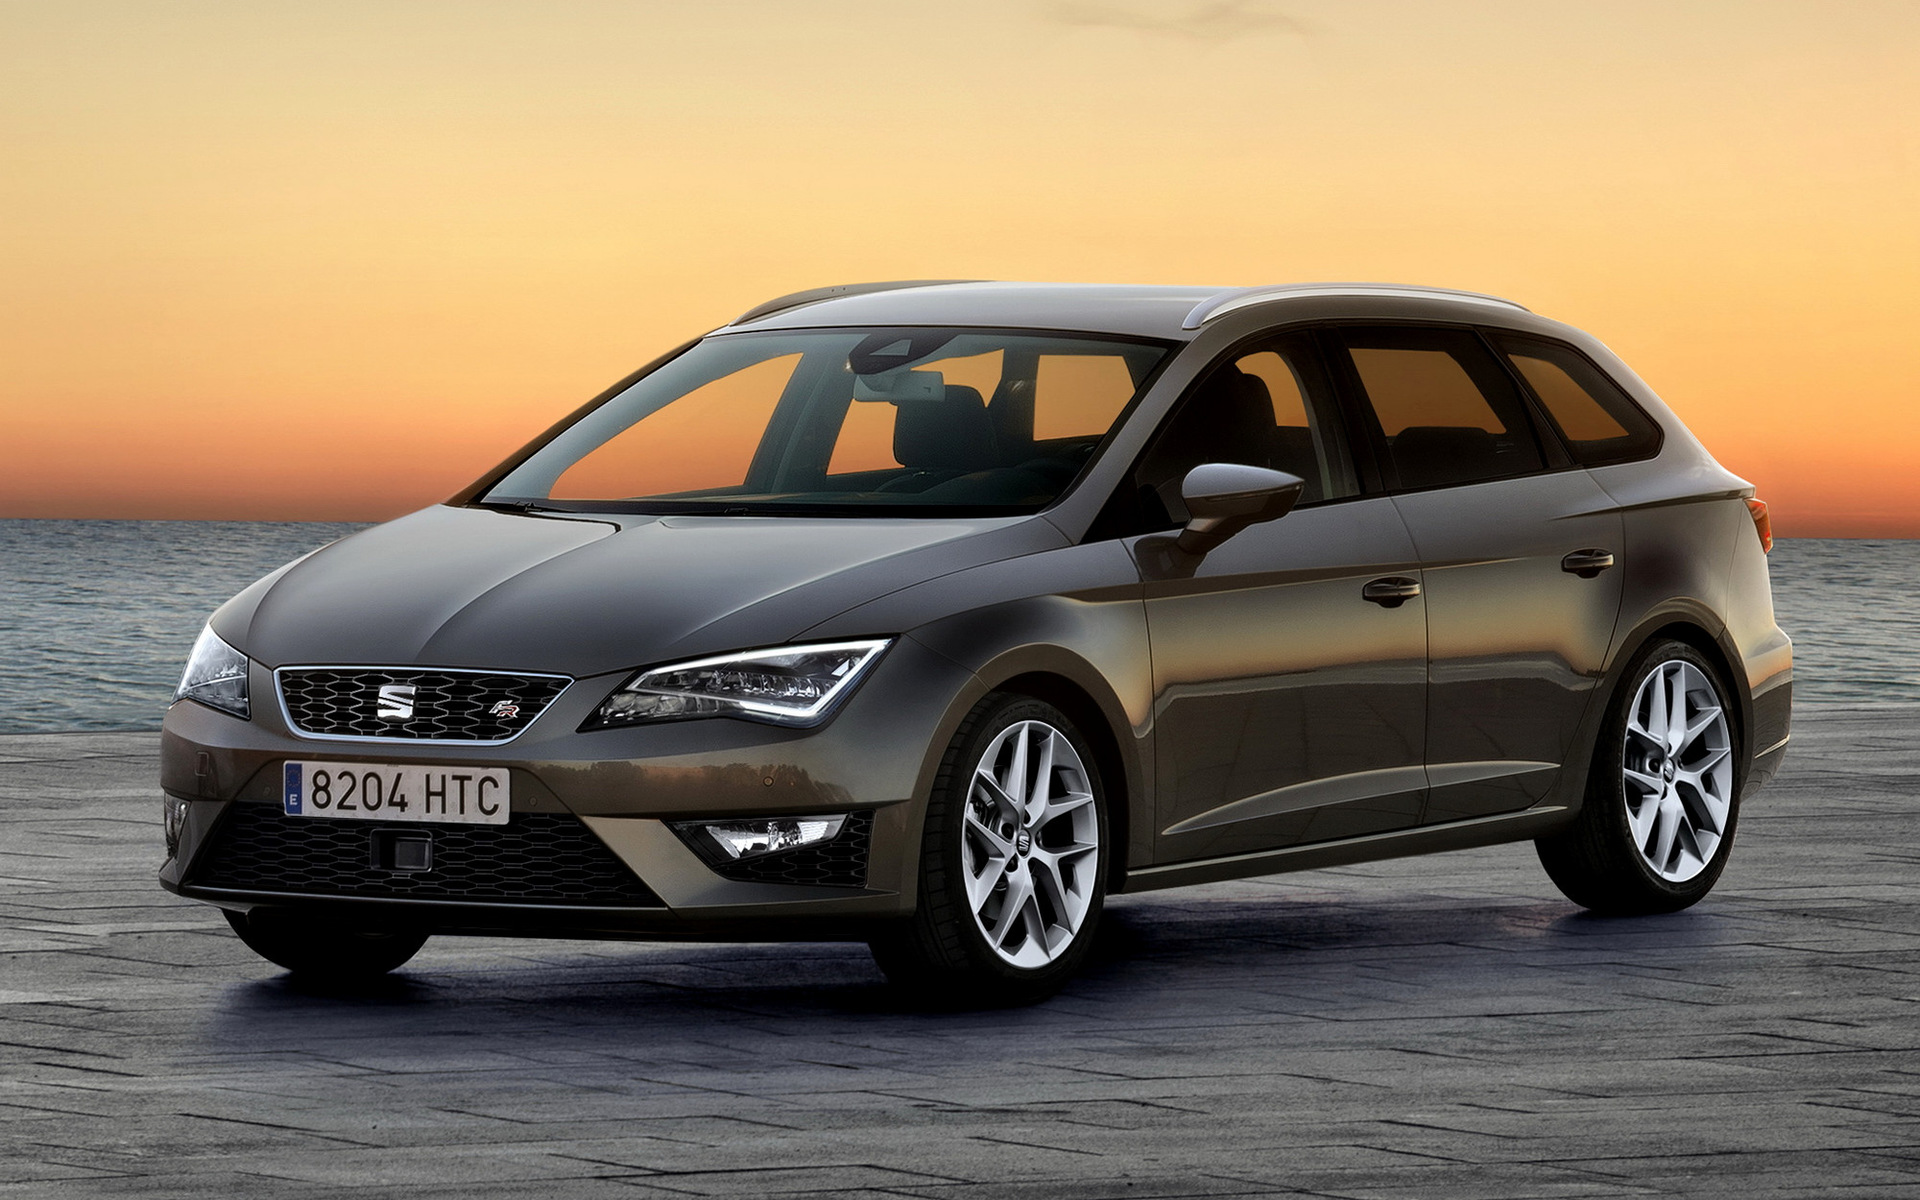 Seat Leon ST FR (2013) Wallpapers and HD Images - Car Pixel